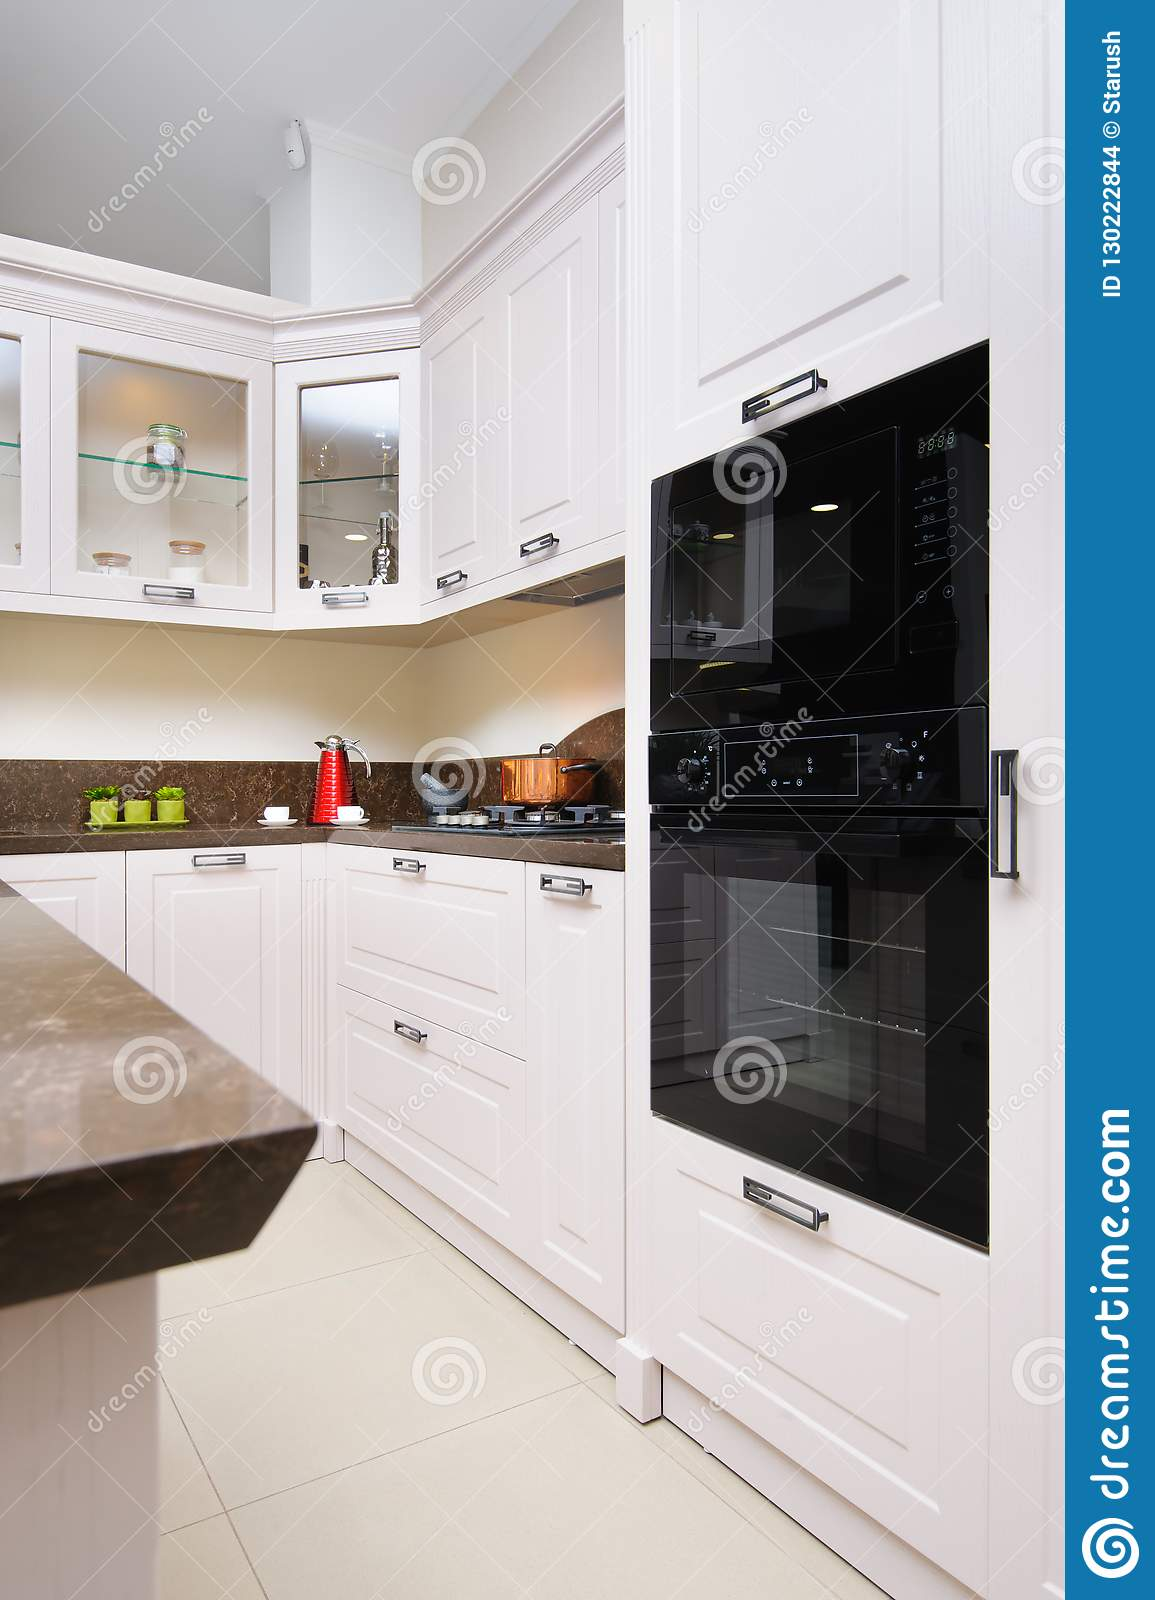 https www dreamstime com luxury modern beige kitchen interior light embedded microwave electric oven gas stove minimalistic clean design image130222844